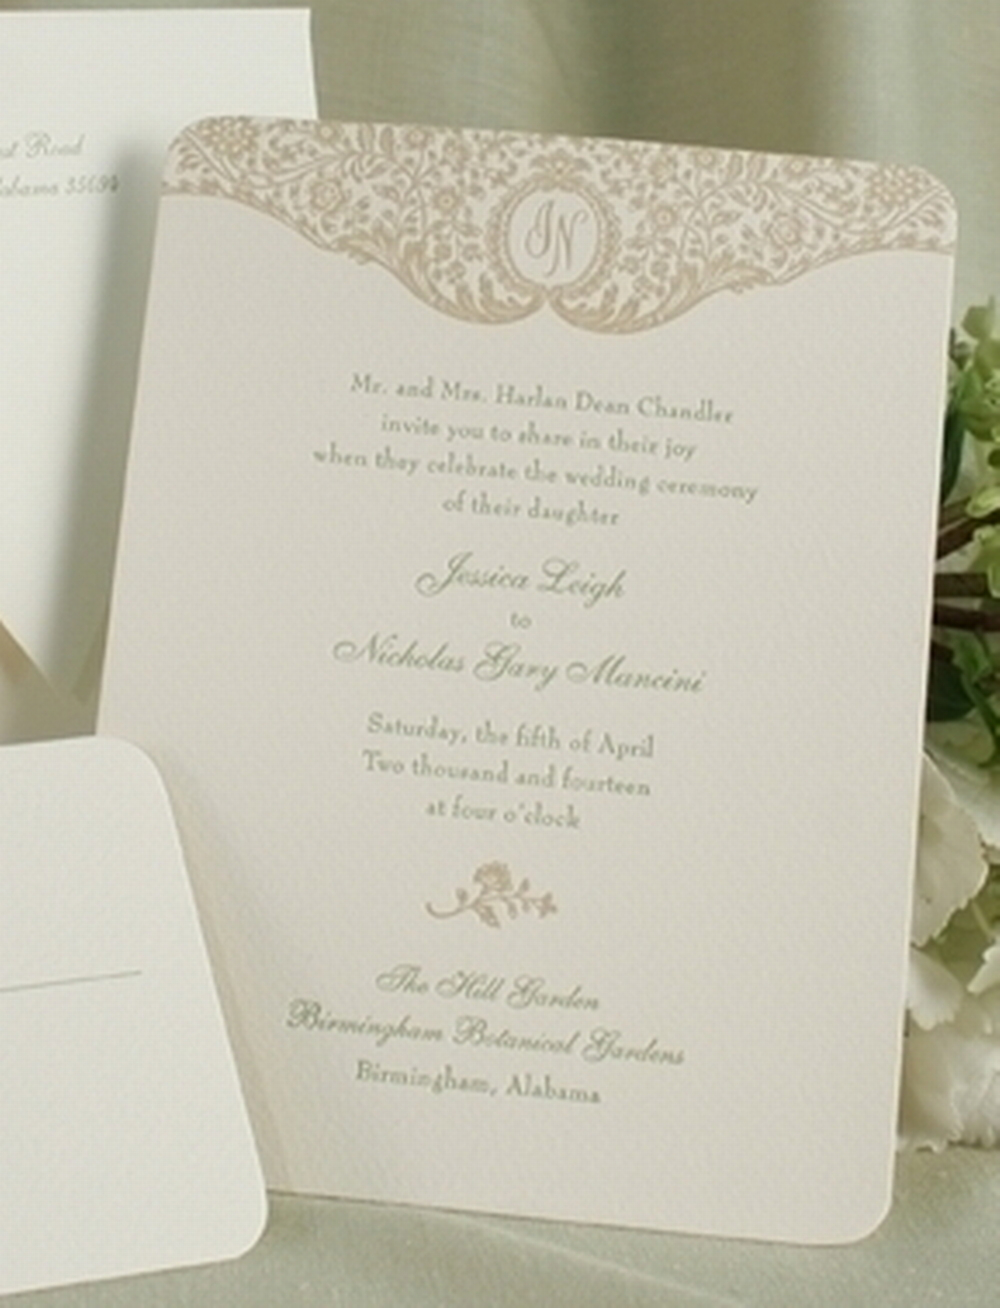 Wedding Invitations Ireland & Wedding Stationery - Floral Trellis ...